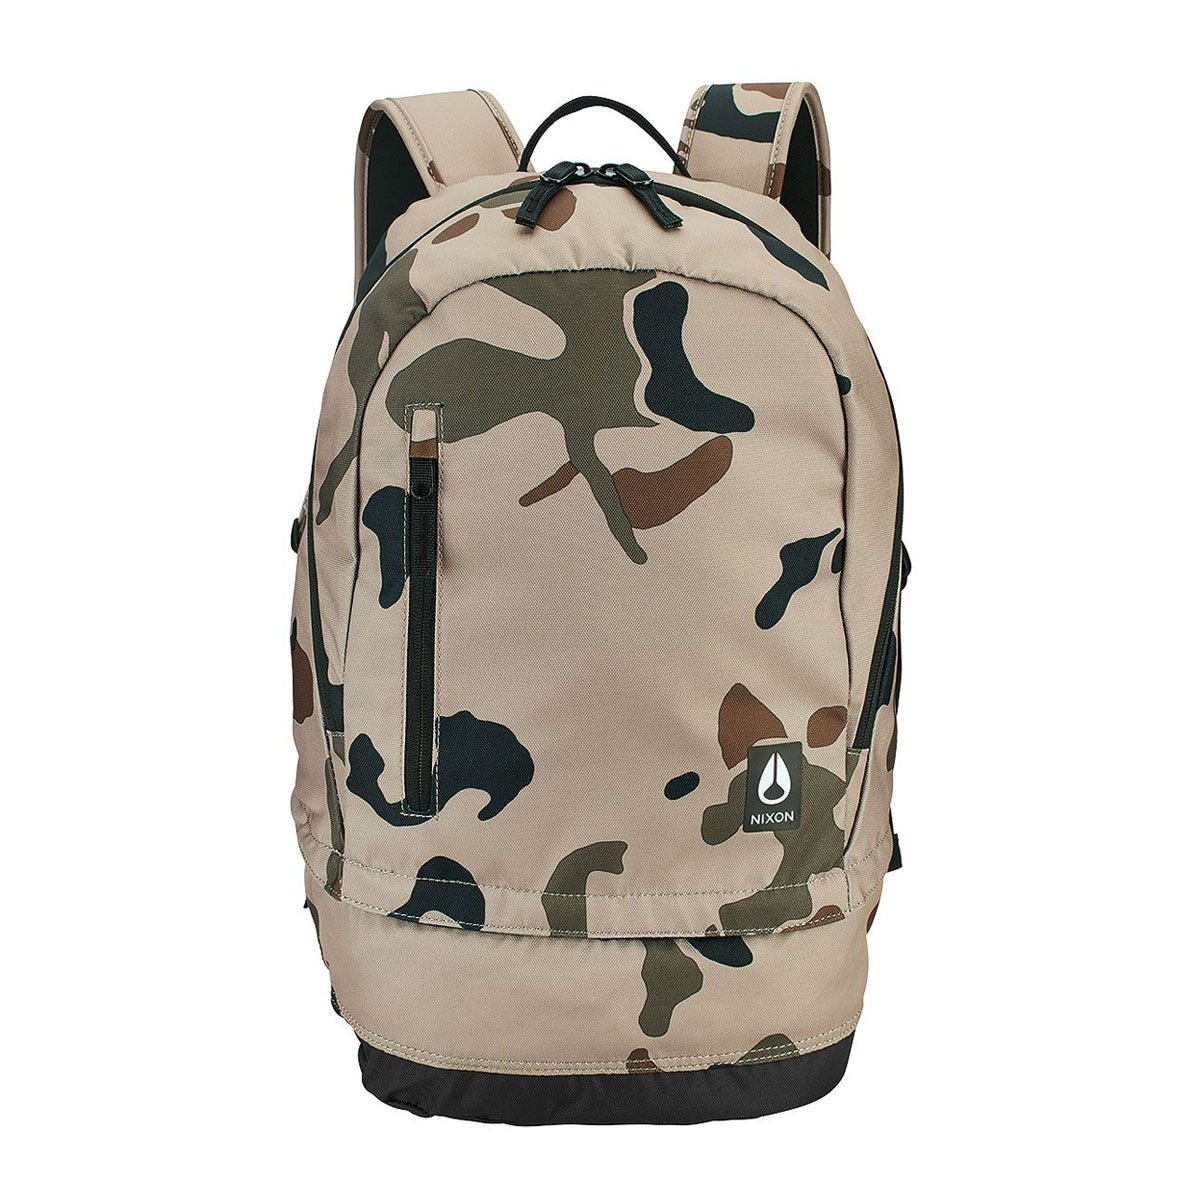 TRAPS BACKPACK